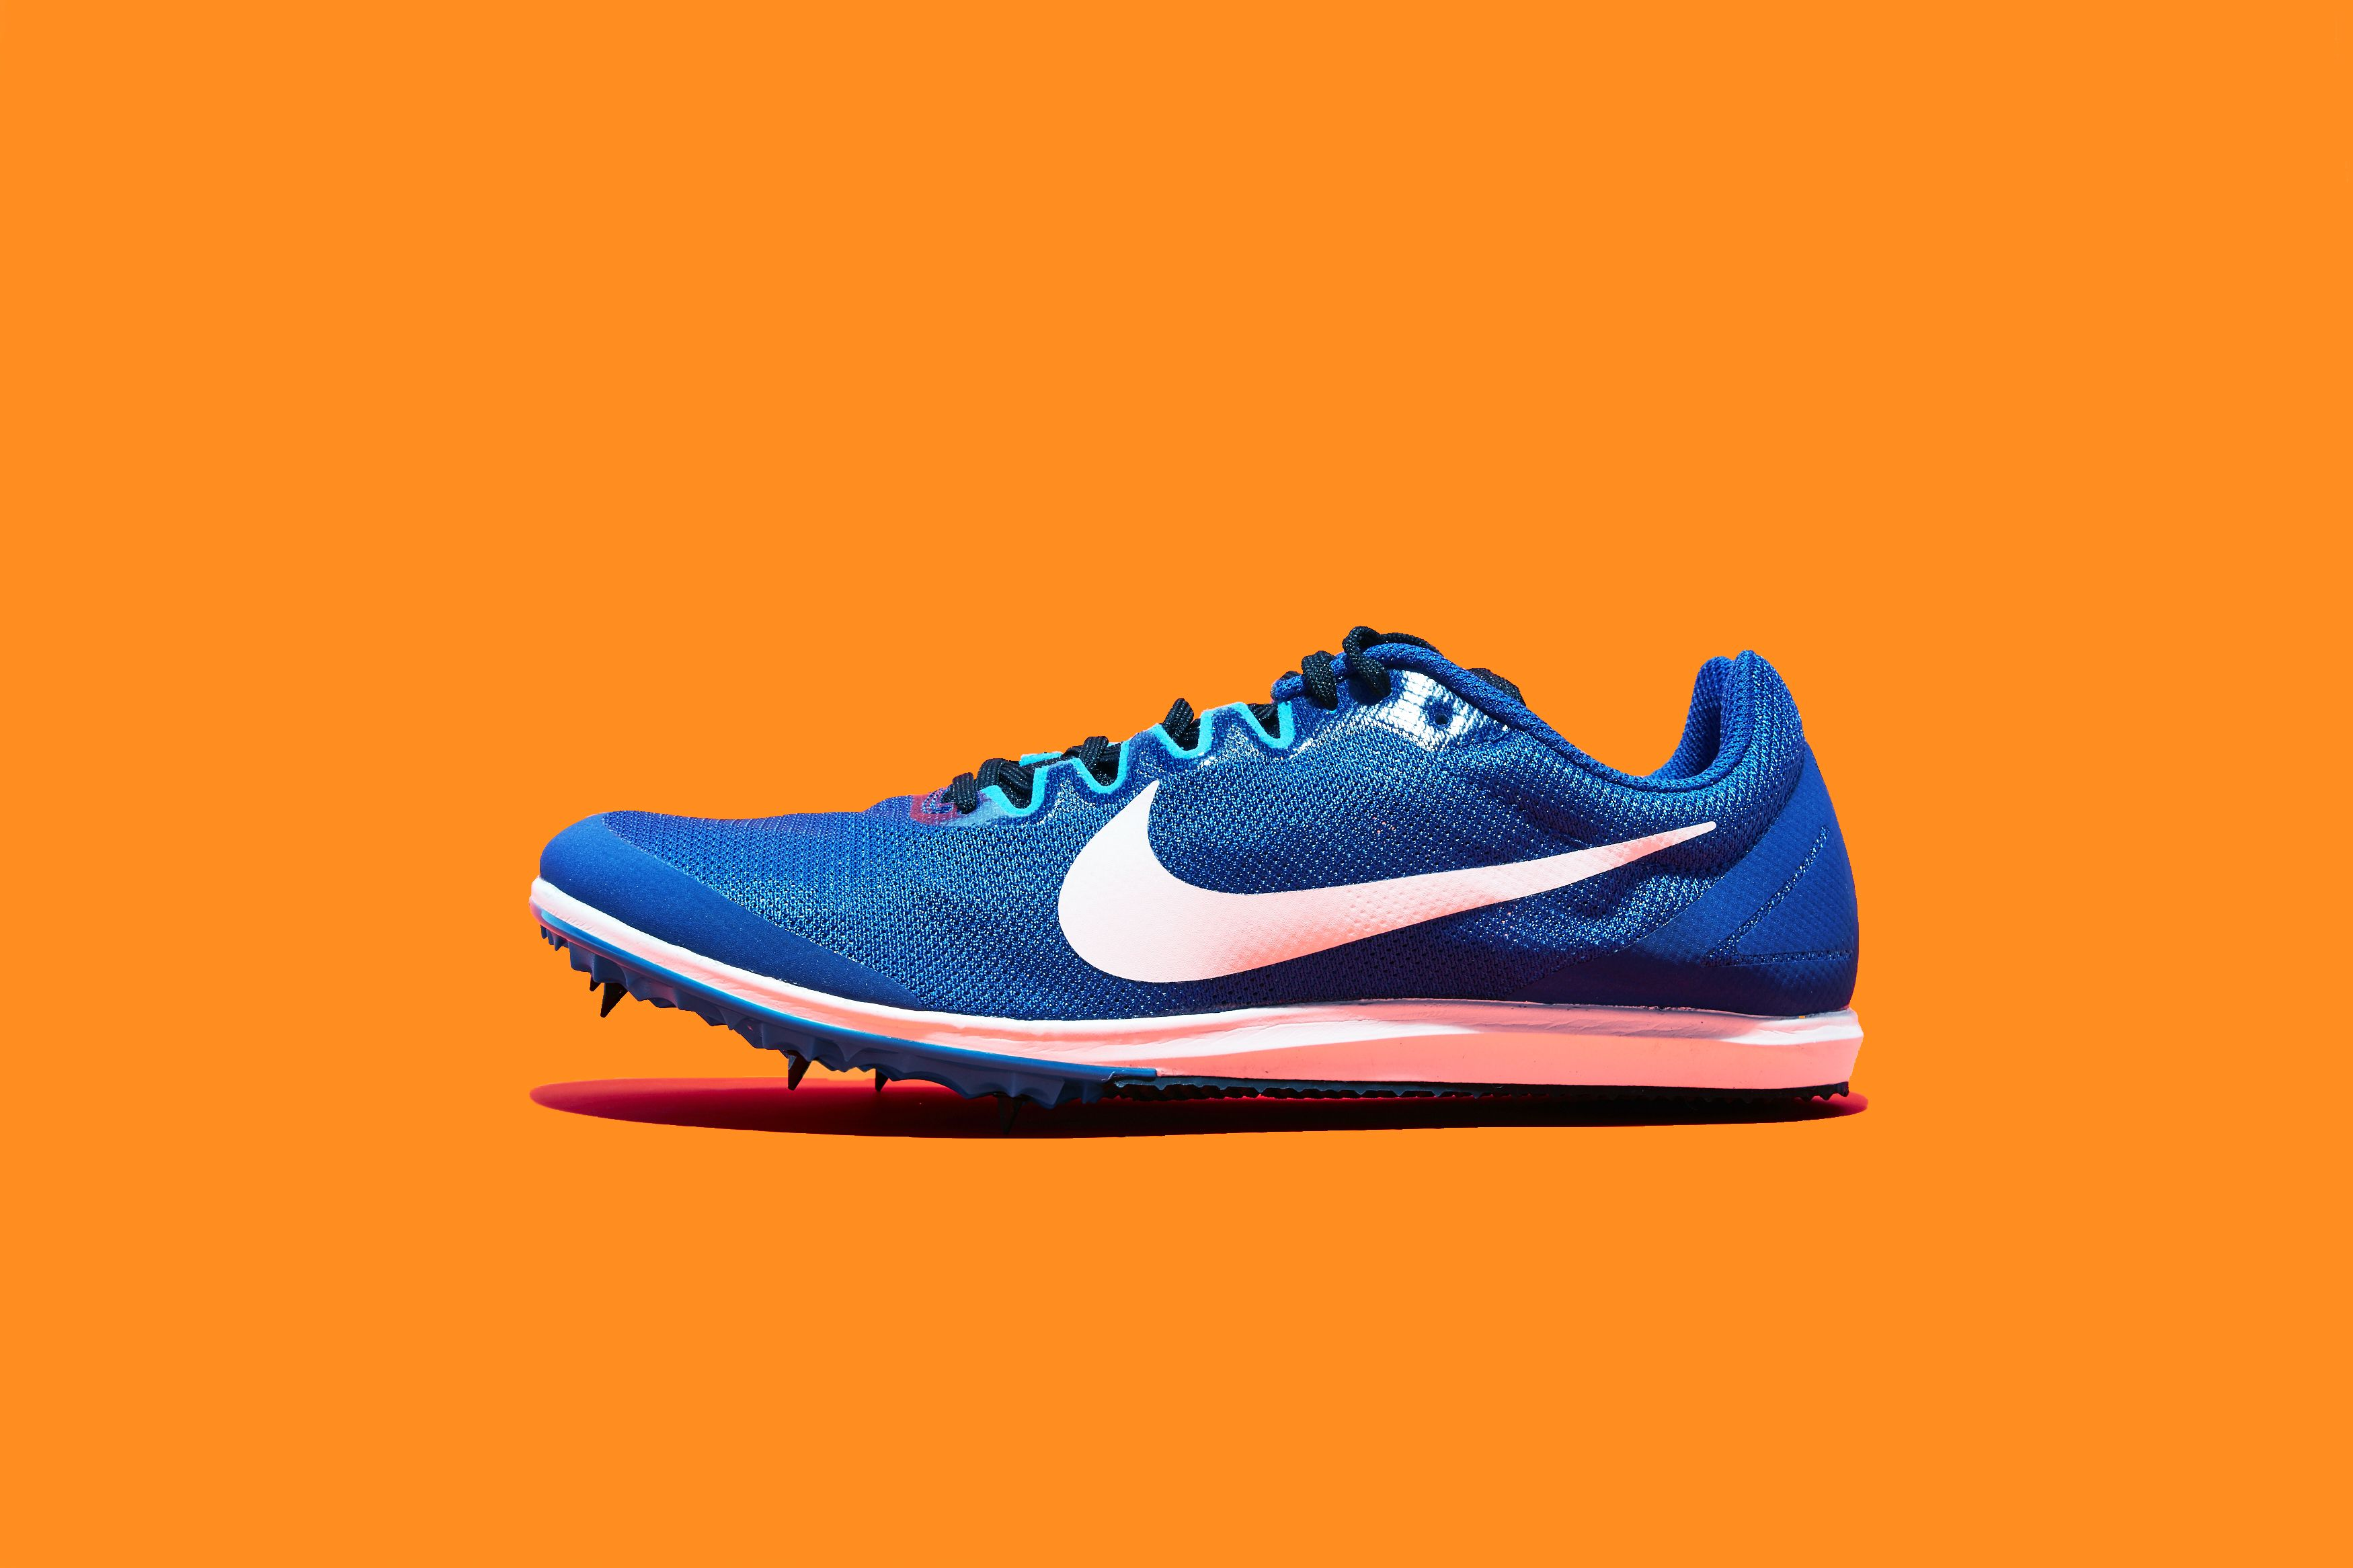 0b95eacb12b2 The Nike Zoom Rival D 10 is a Versatile Track Spike for Beginning Racers